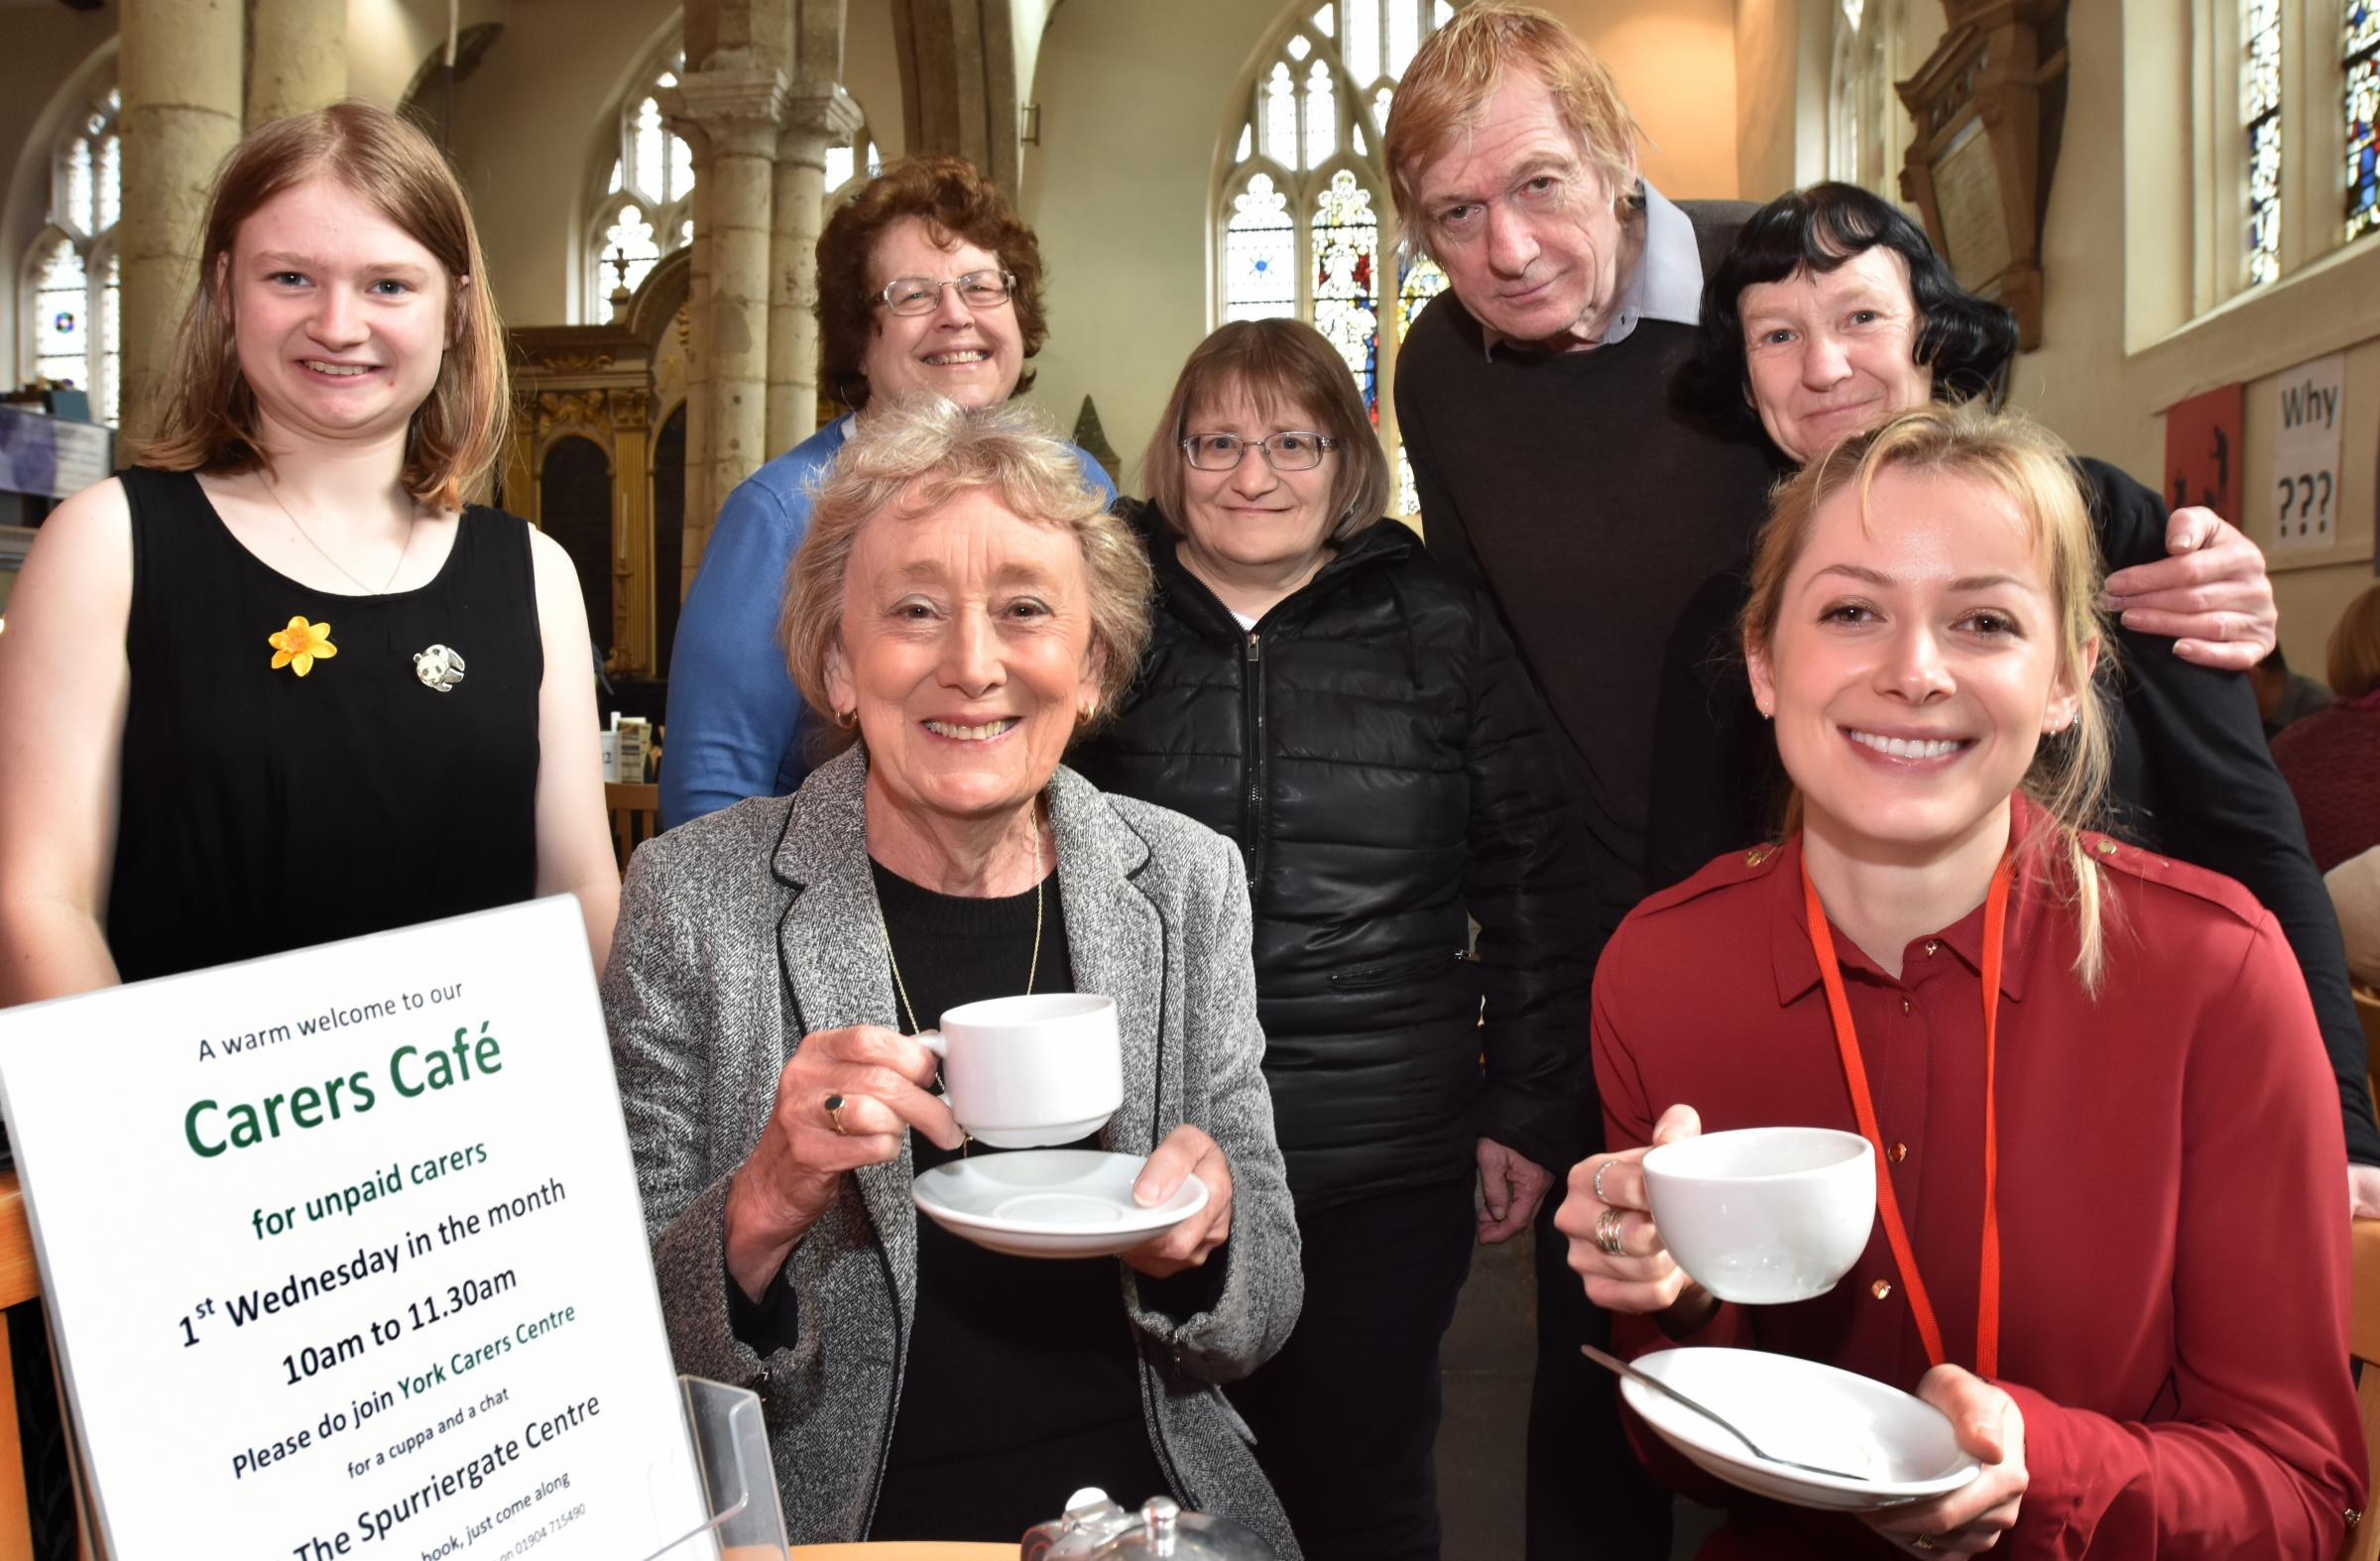 CUPPA: Councillor Carol Runciman, left, and care support worker Alice Lloyd-Jones join others at the Carers Cafe, held every Wednesday at the Spurriergate Centre, York  Picture: Frank Dwyer